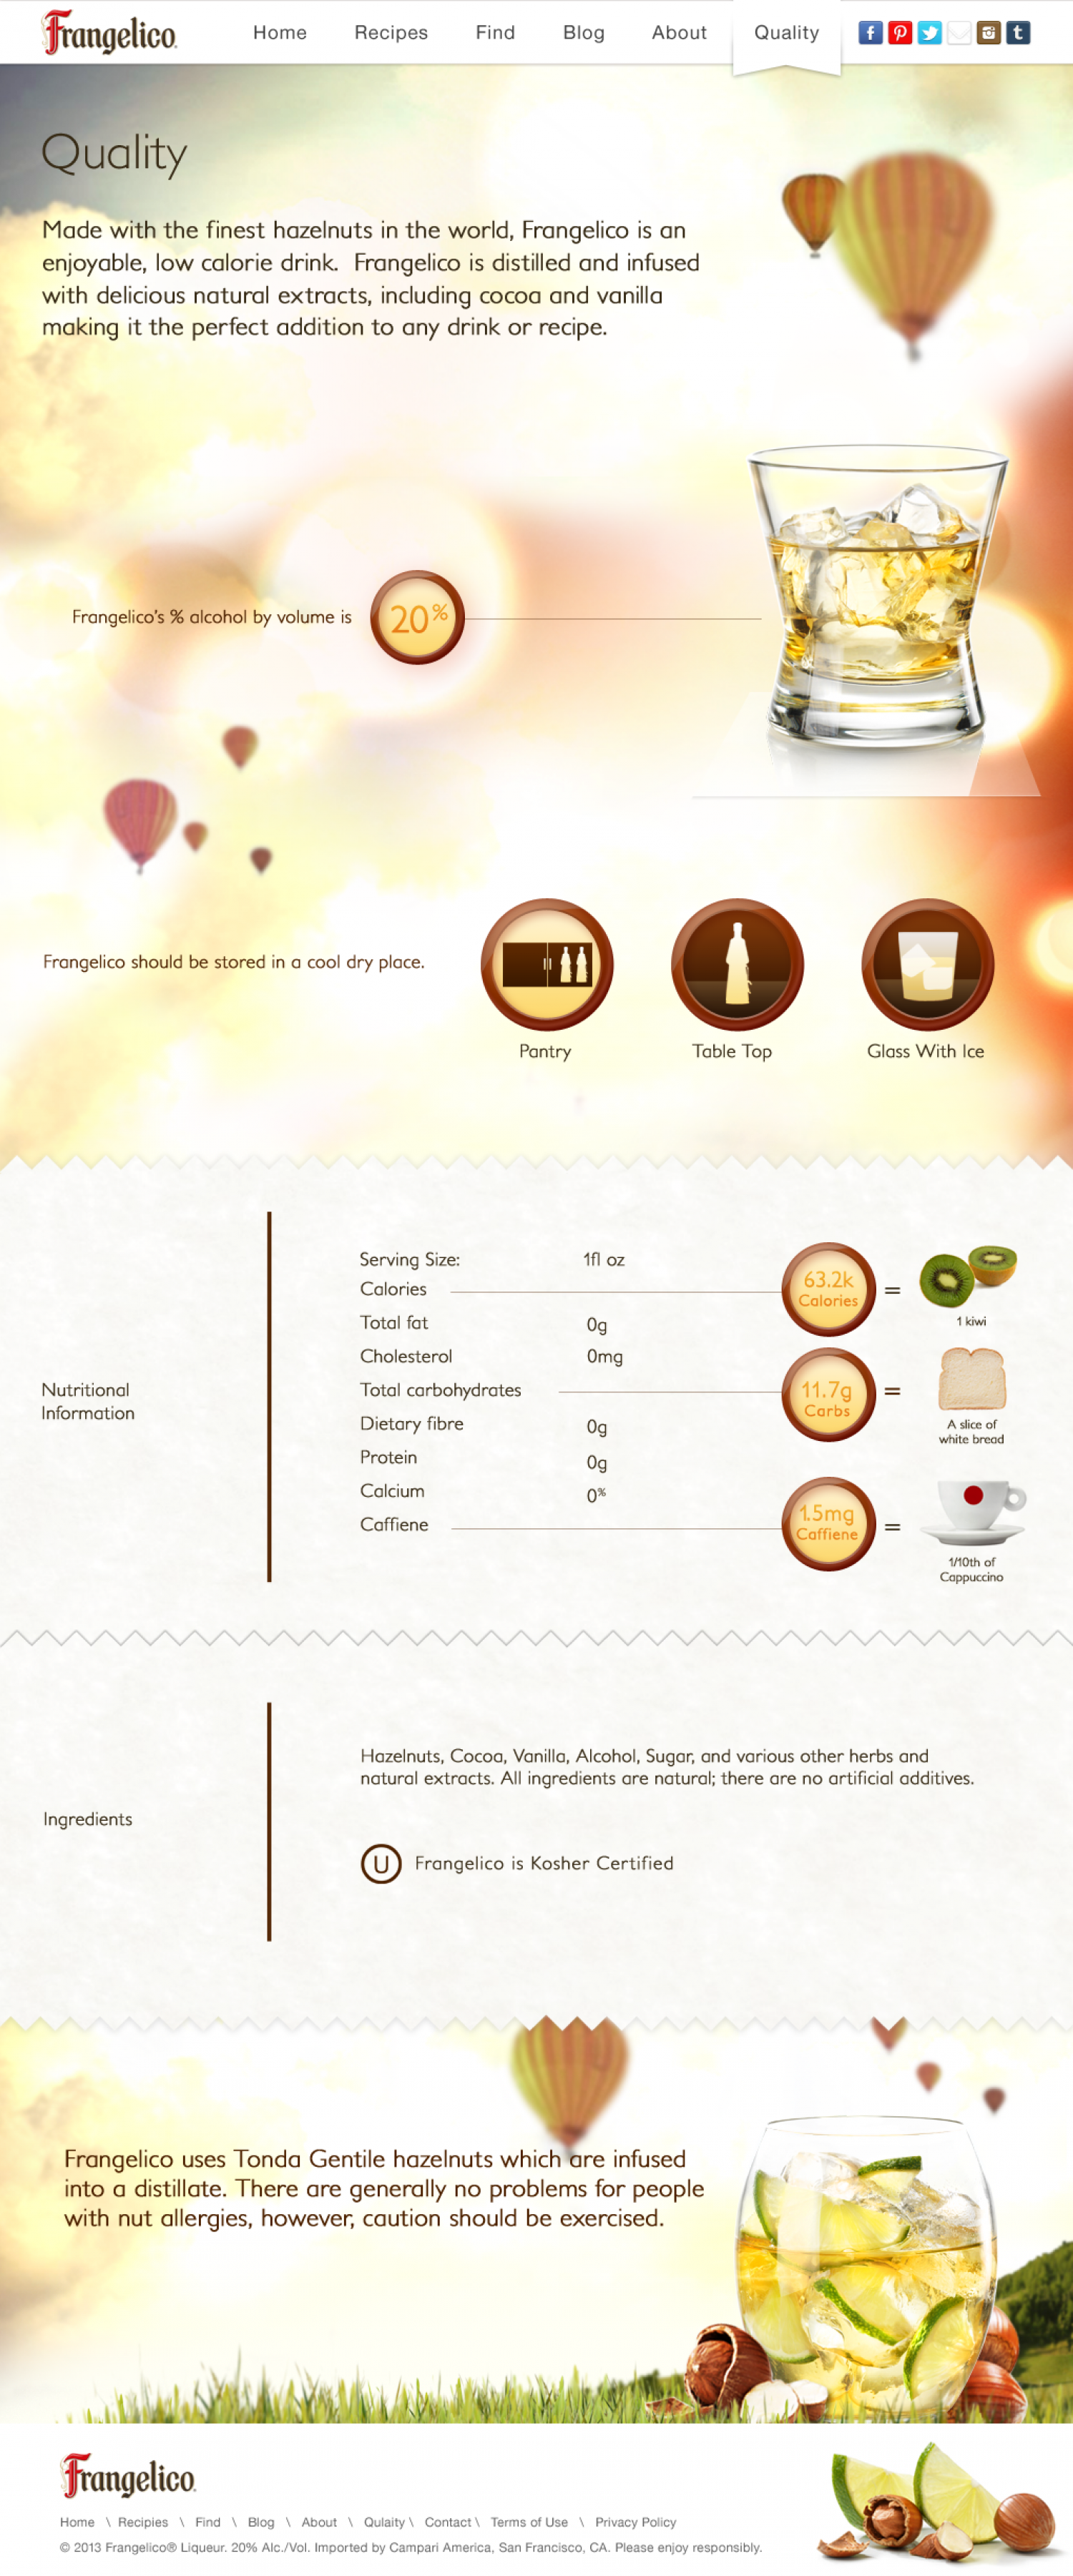 Frangelico Quality Parallax Infograph Infographic